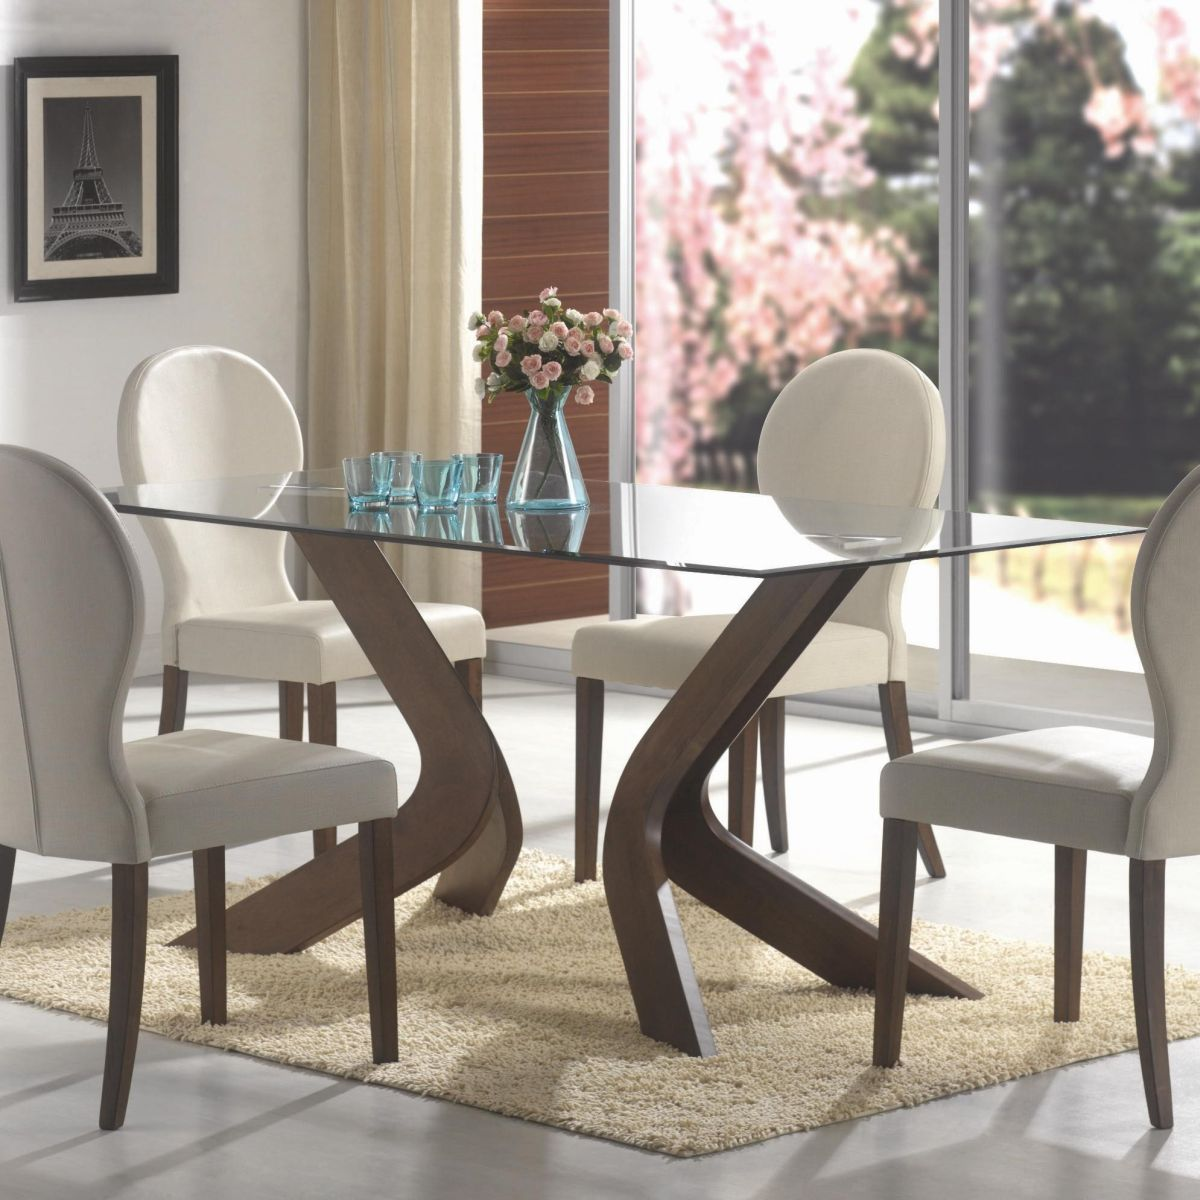 Modern Glass Dining Room Tables Rectangle Glass Dining Room Tableoval Back Dining Chairs And .